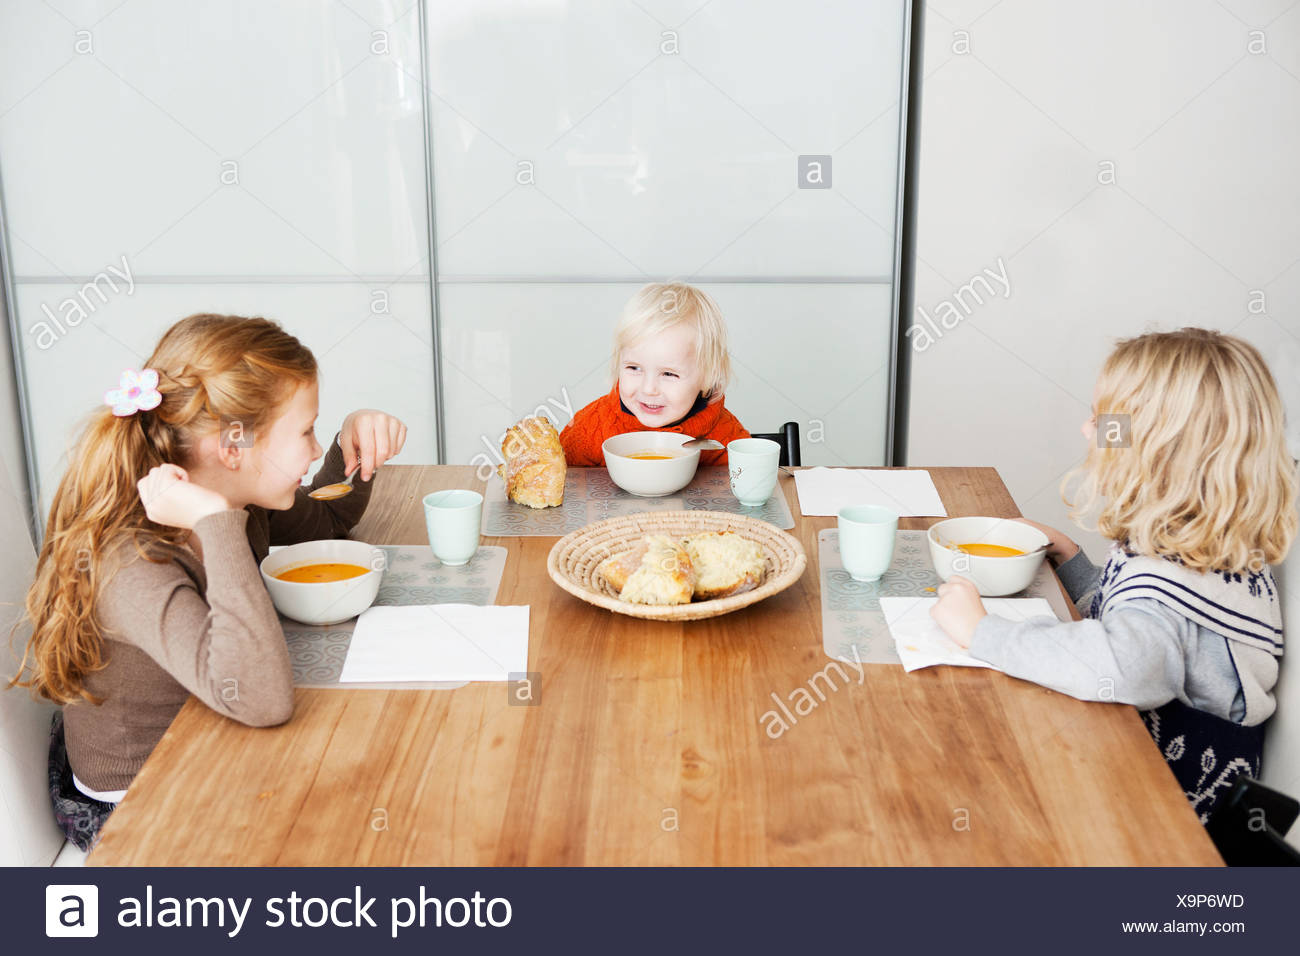 Children eating lunch at table - Stock Image